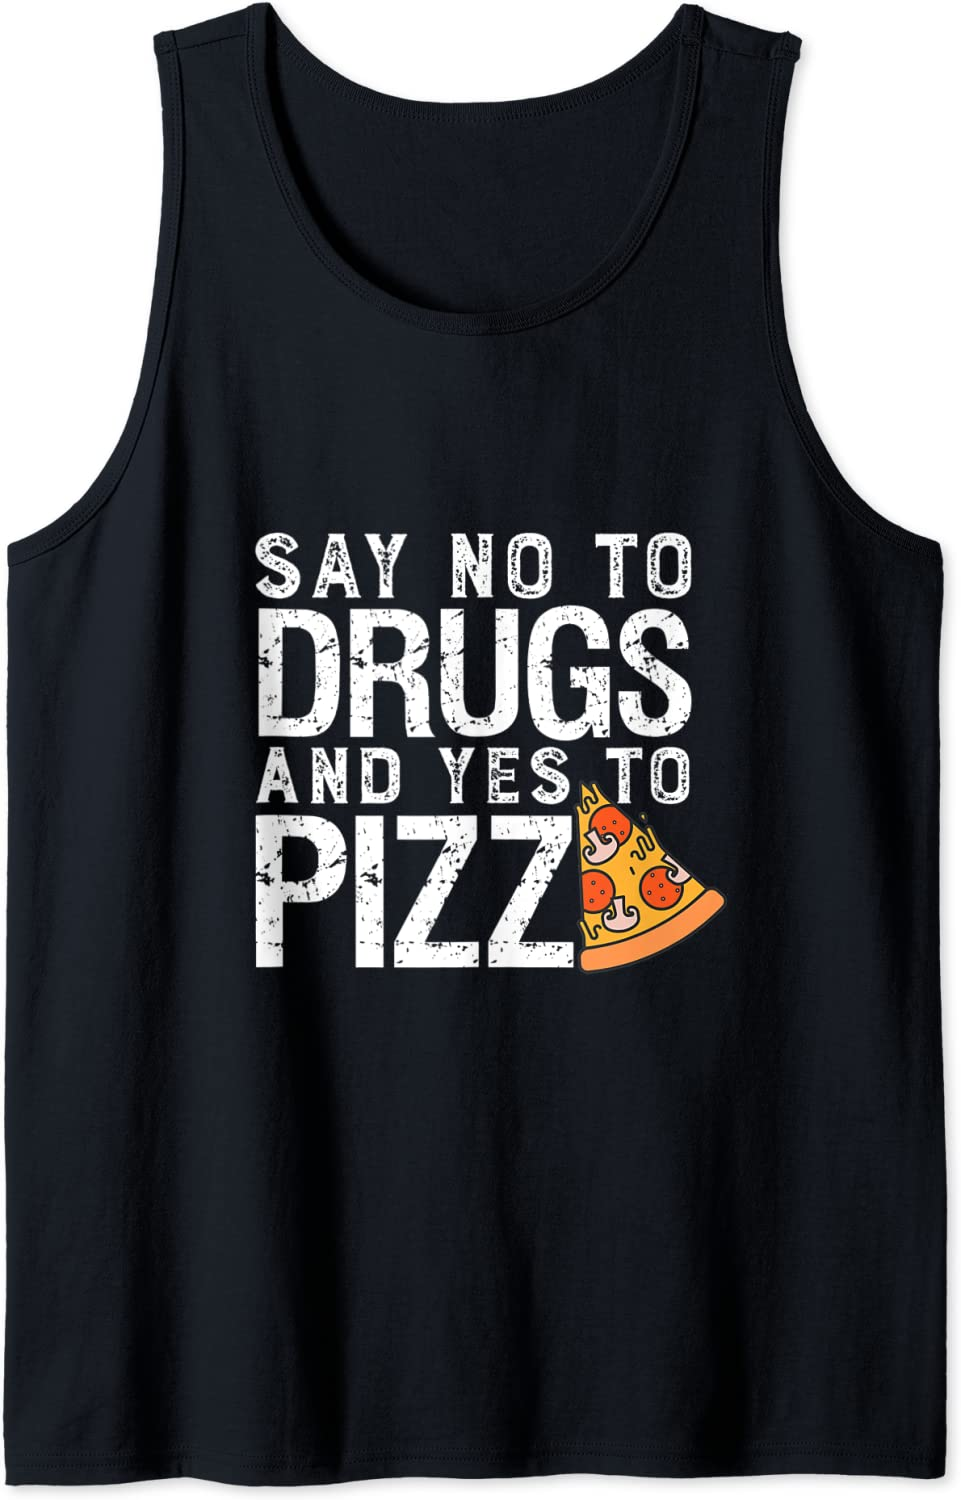 Amazon Com Say No To Drugs And Yes To Pizza Funny Anti Drug Tank Top Clothing